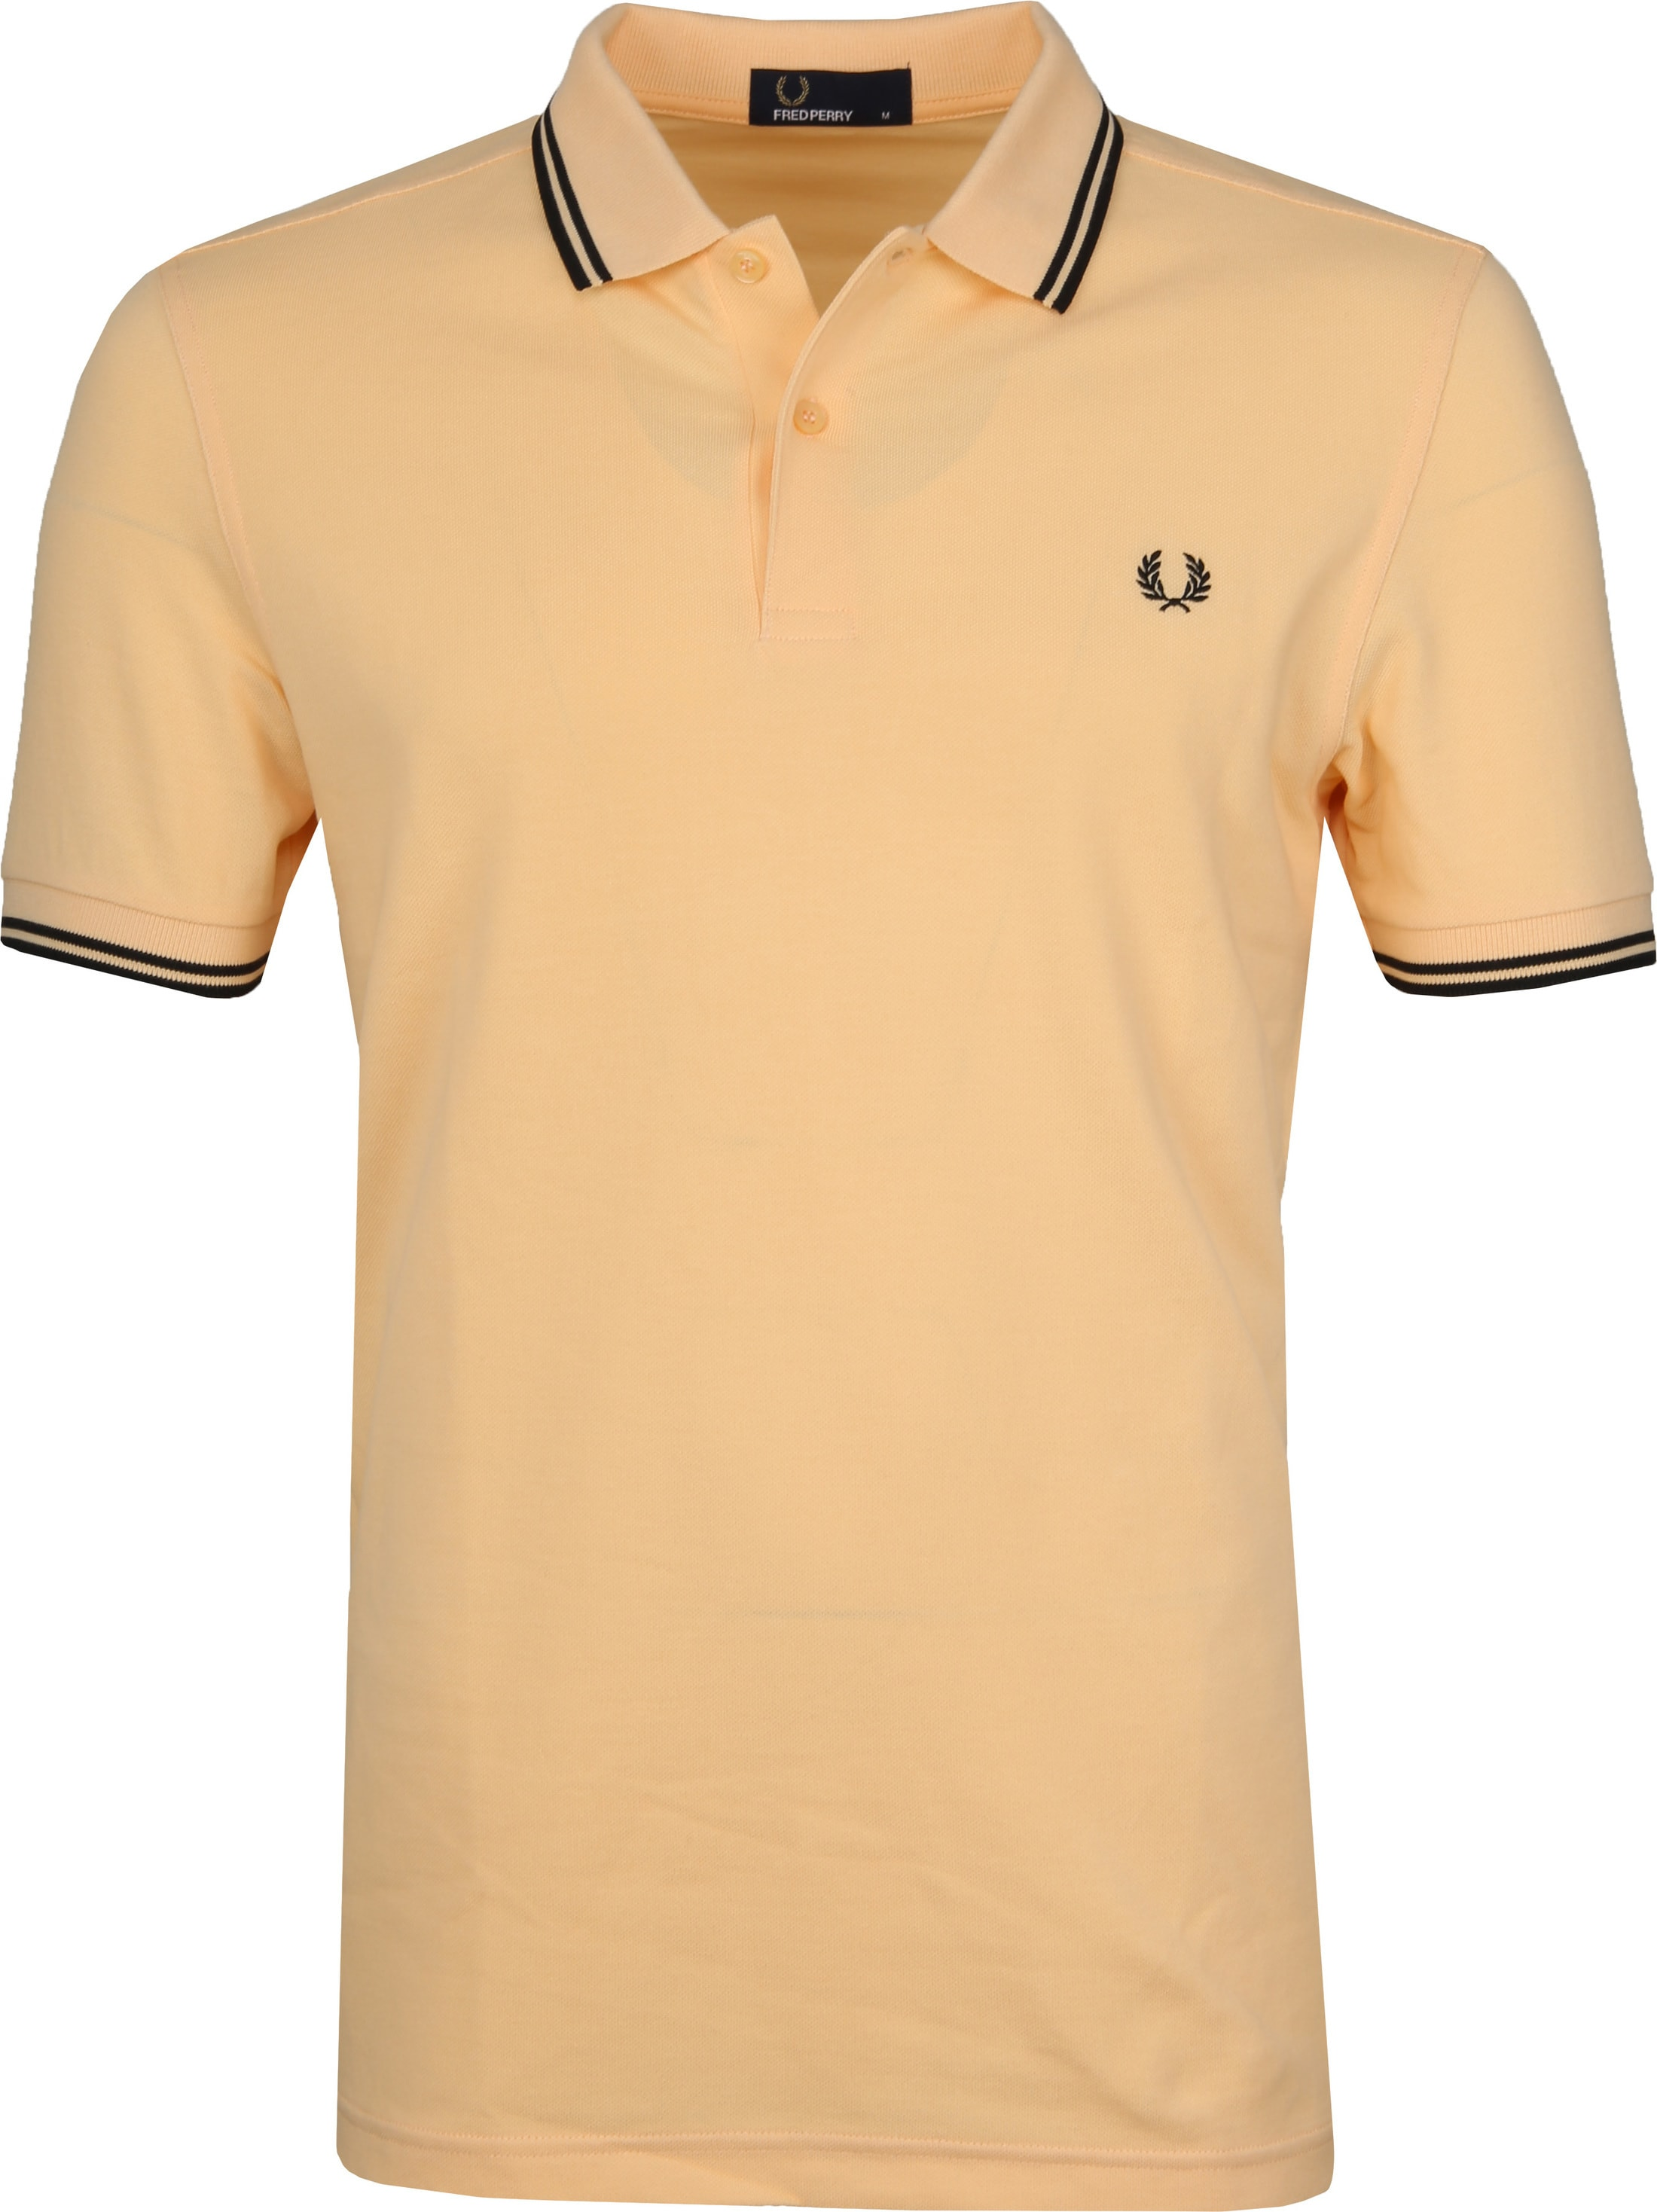 Fred Perry Poloshirt Yellow I07 foto 0